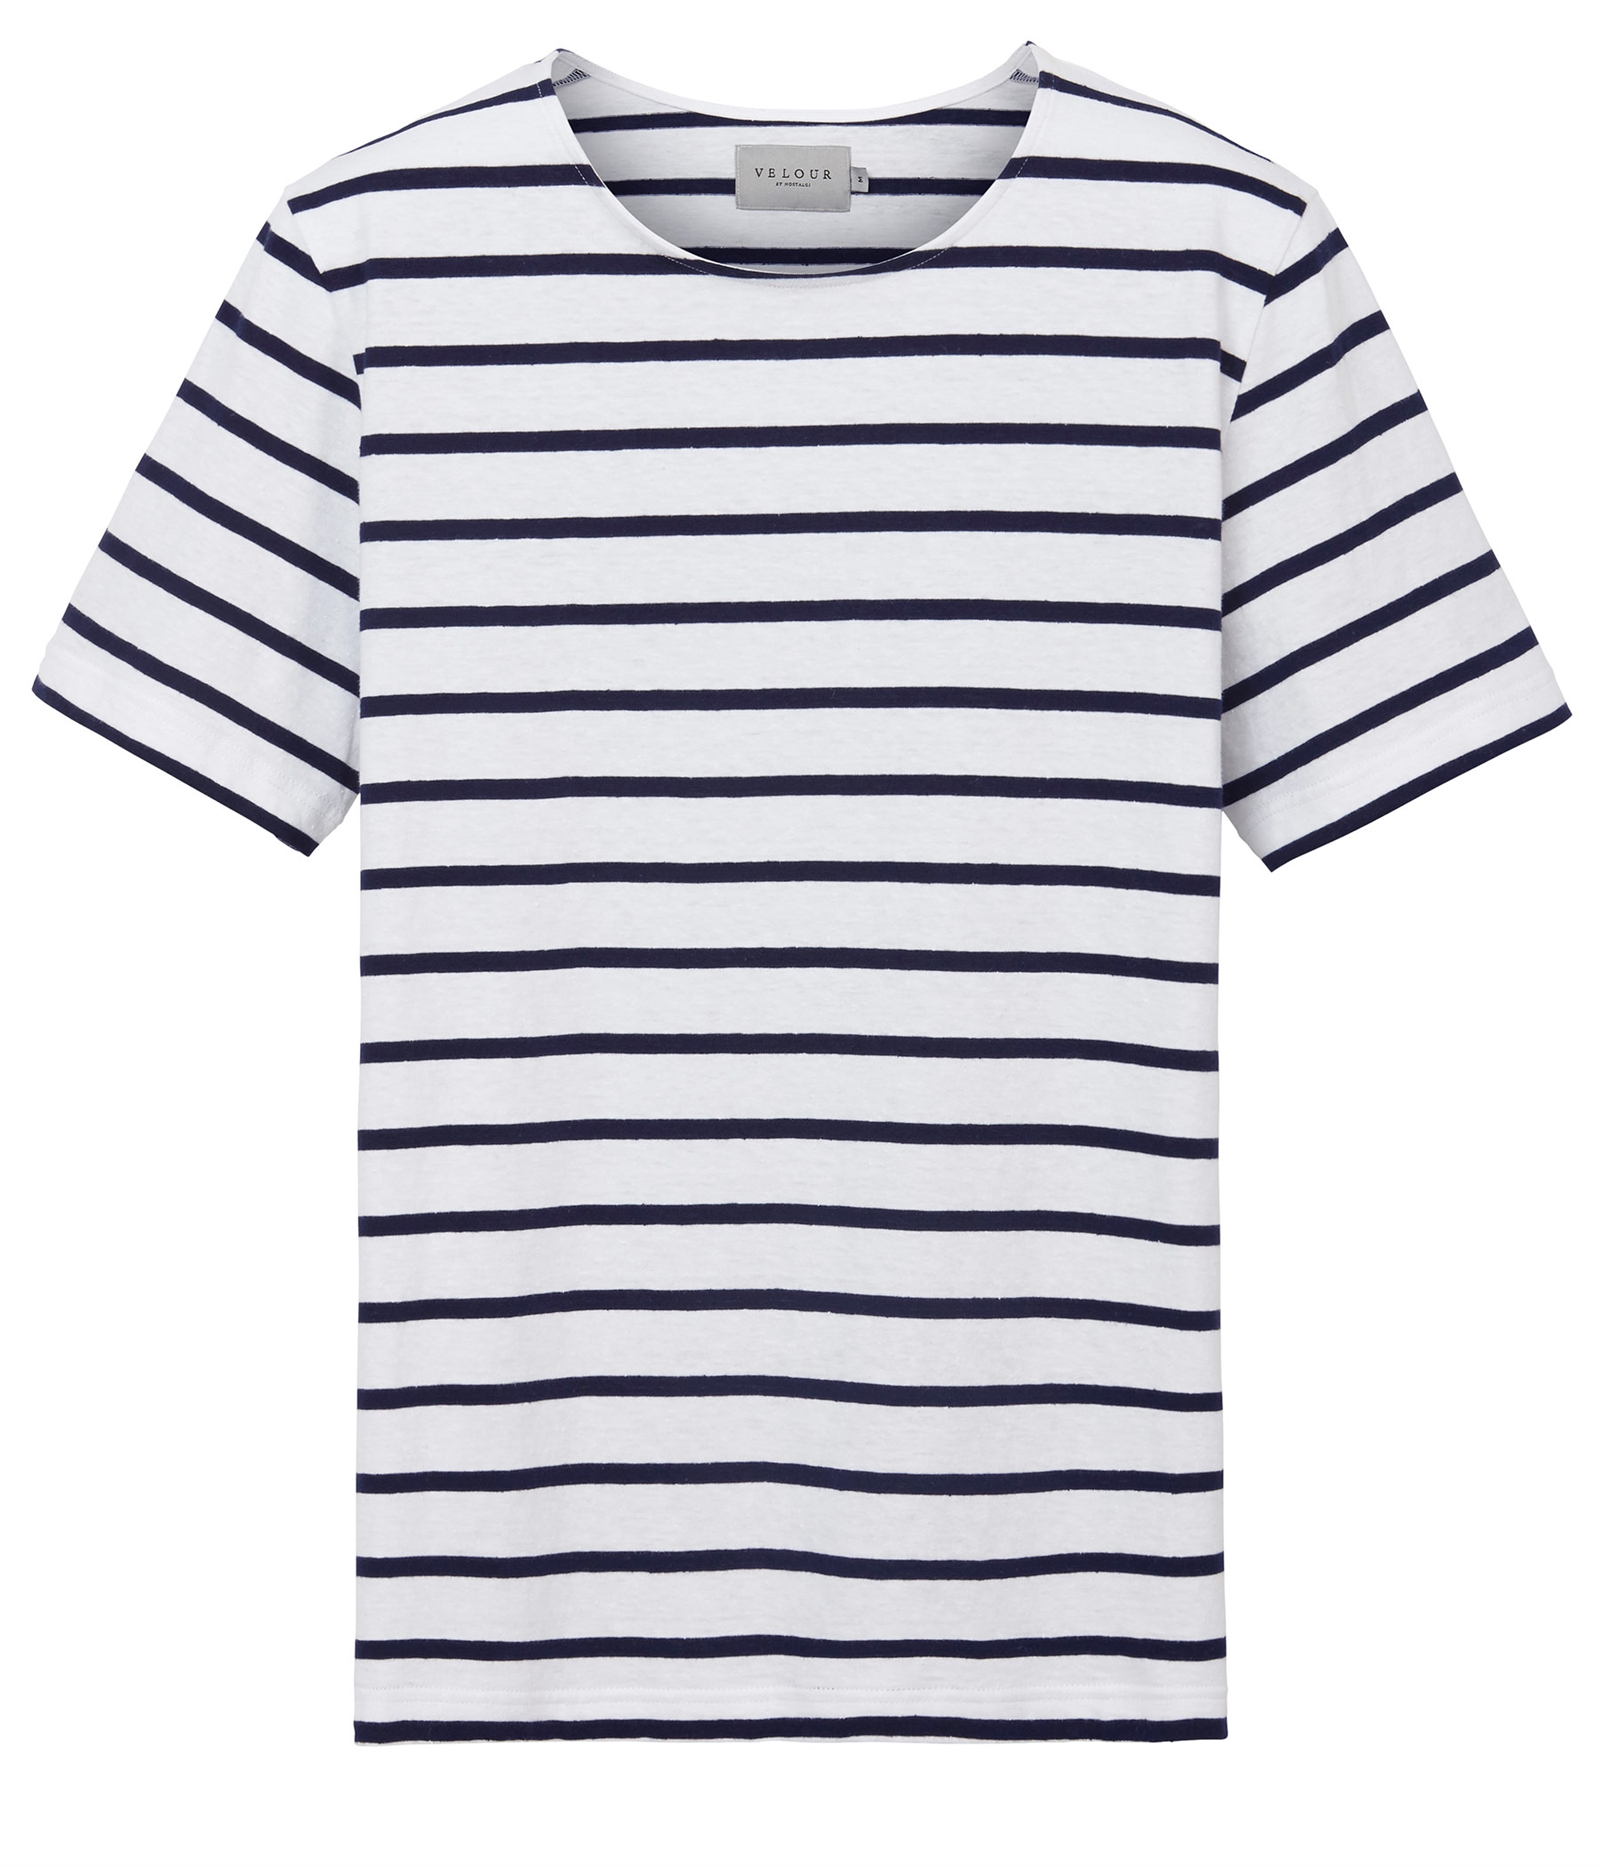 VBN_The-Swan_Striped_Tee_White_Dark_Navy_3803000285_1800x2100